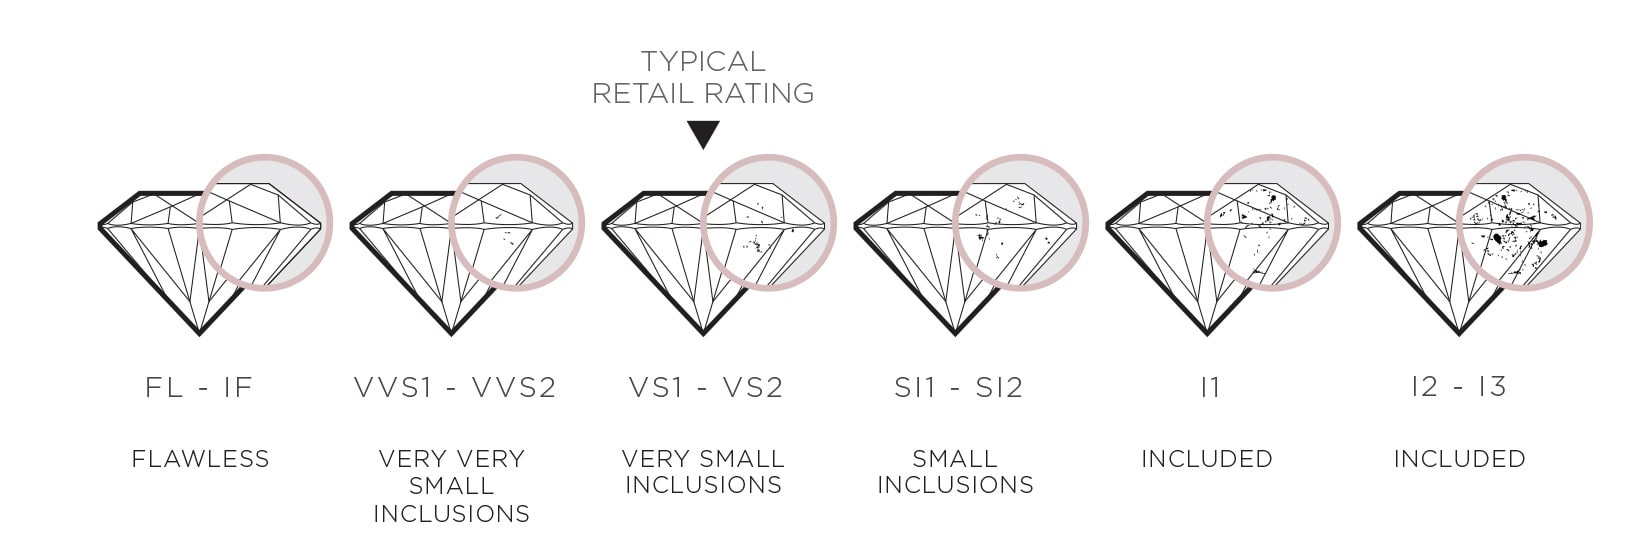 An infographic showing the diamond clarity scale